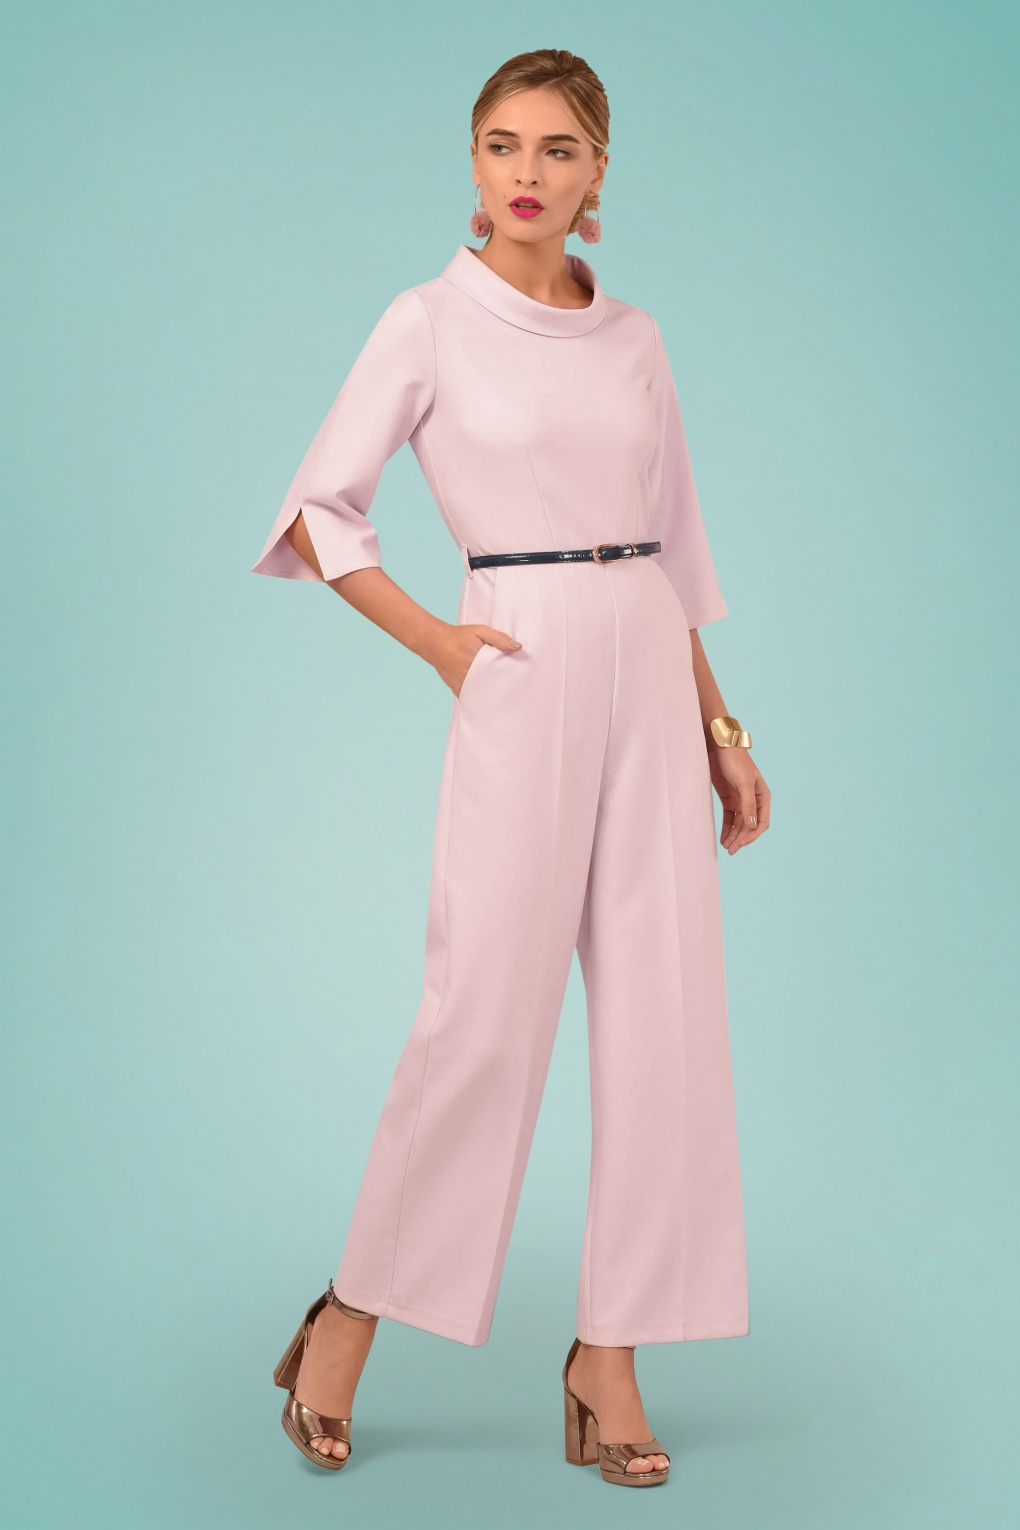 1960s Style Dresses, Clothing, Shoes UK 60s Funnel Collar Jumpsuit in Light Pink £87.84 AT vintagedancer.com